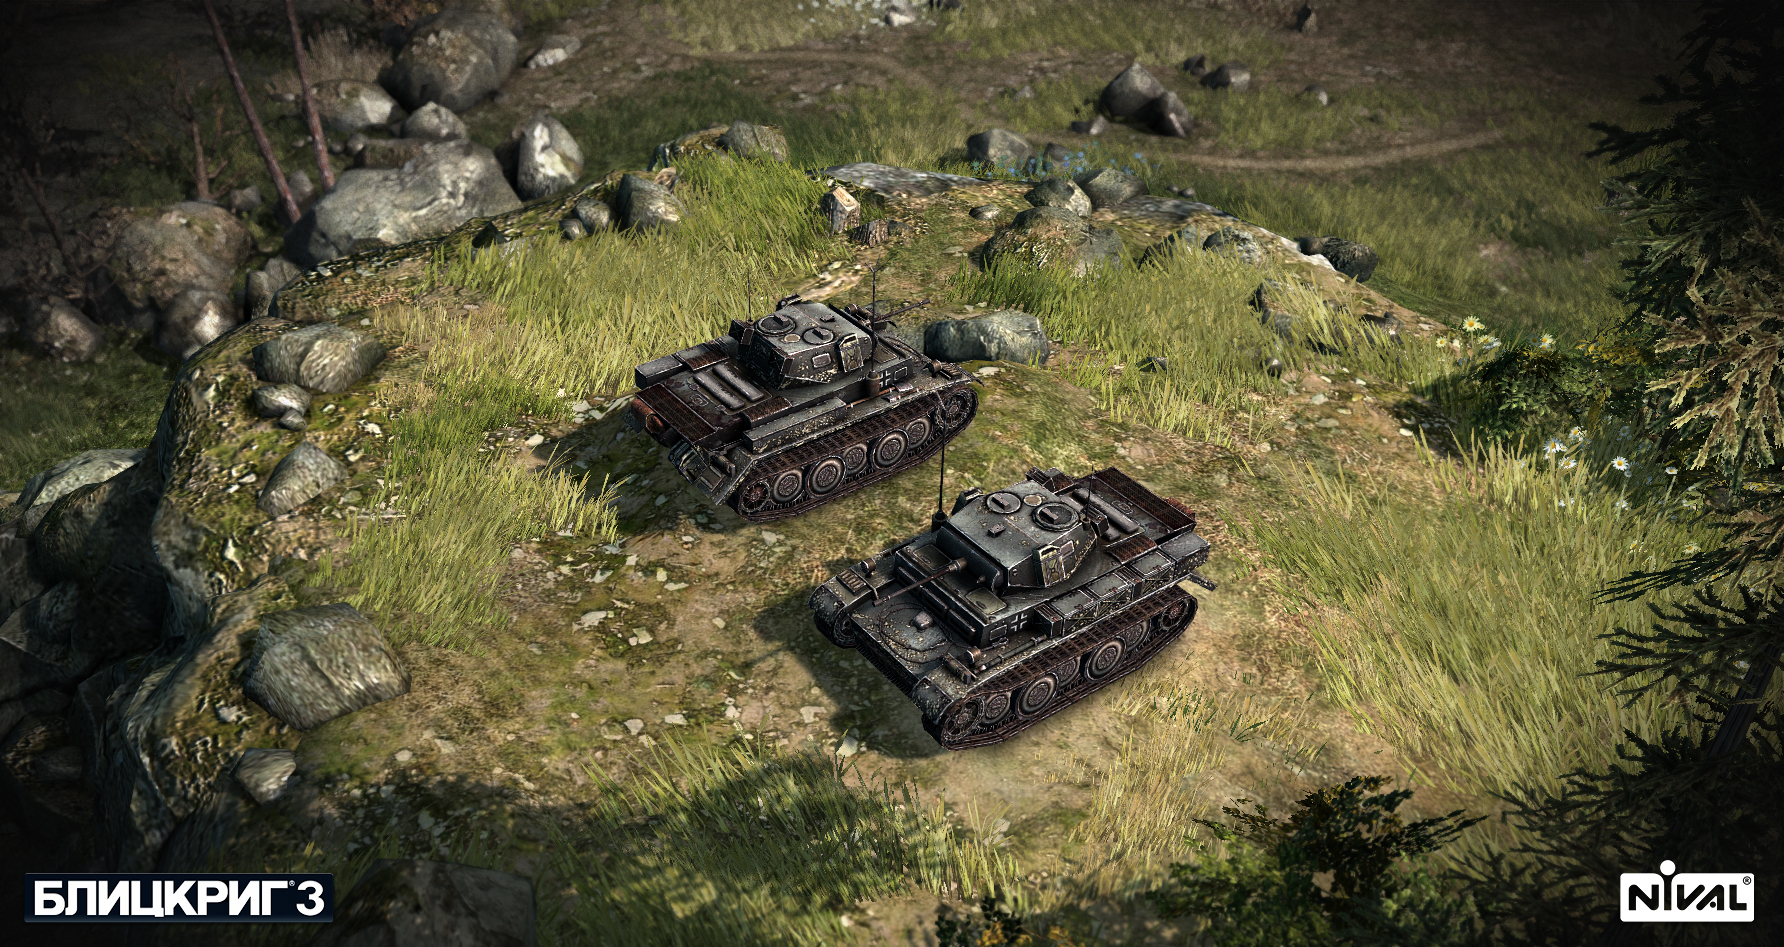 http://www.pictureshack.ru/images/69428_pz2Luchs.jpg